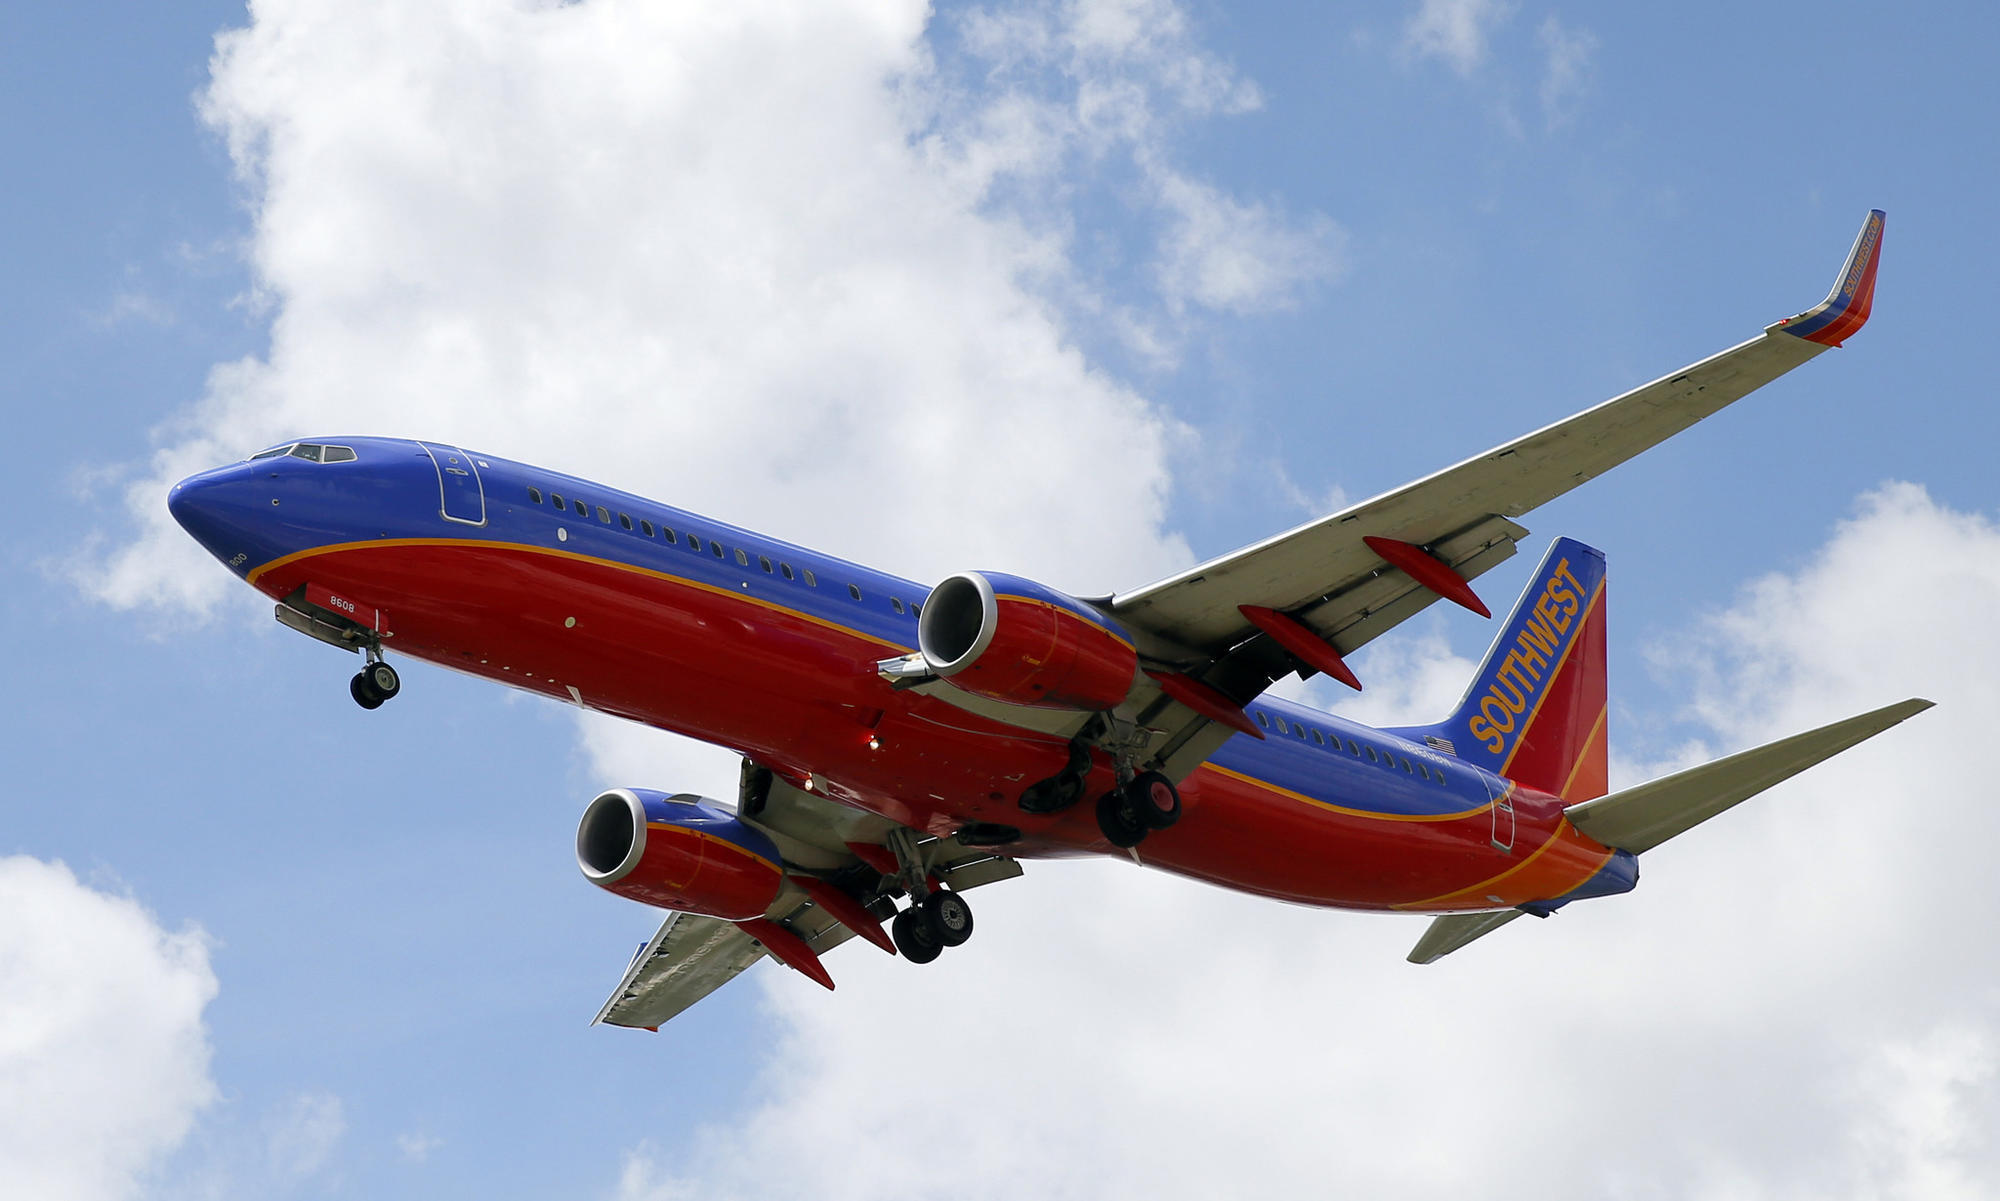 Emotional support dog bites child on southwest flight forcing emotional support dog bites child on southwest flight forcing airline to re examine policies chicago tribune buycottarizona